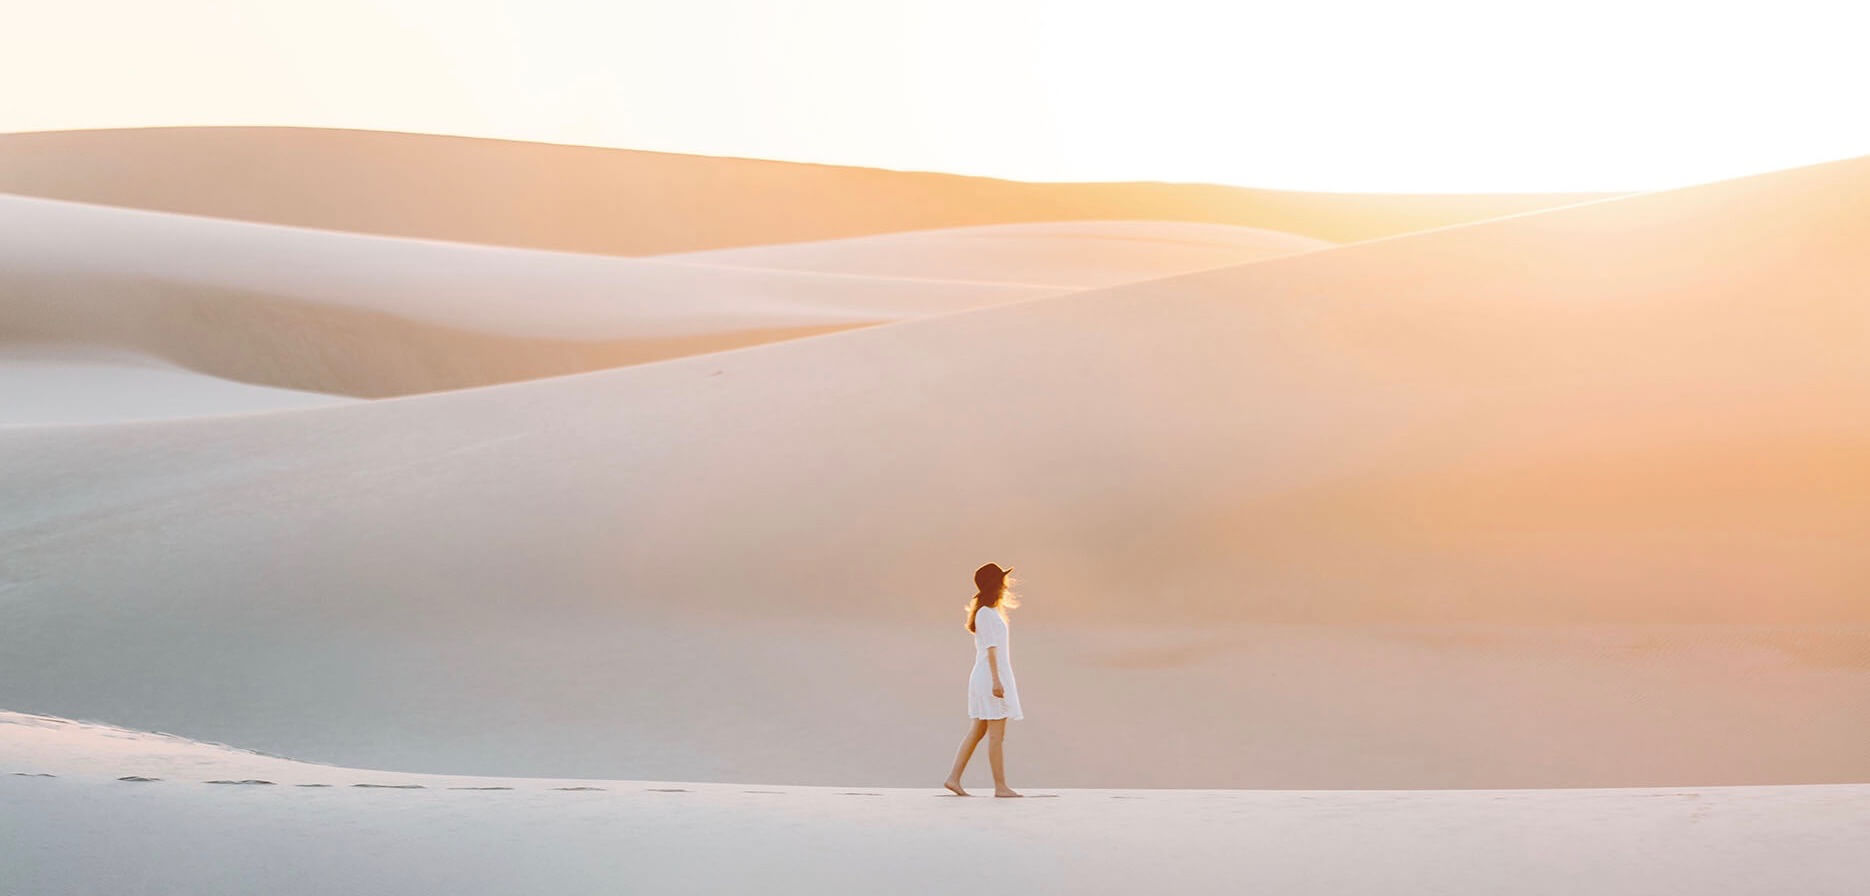 Emilie Ristevski photo of woman walking across sand dunes